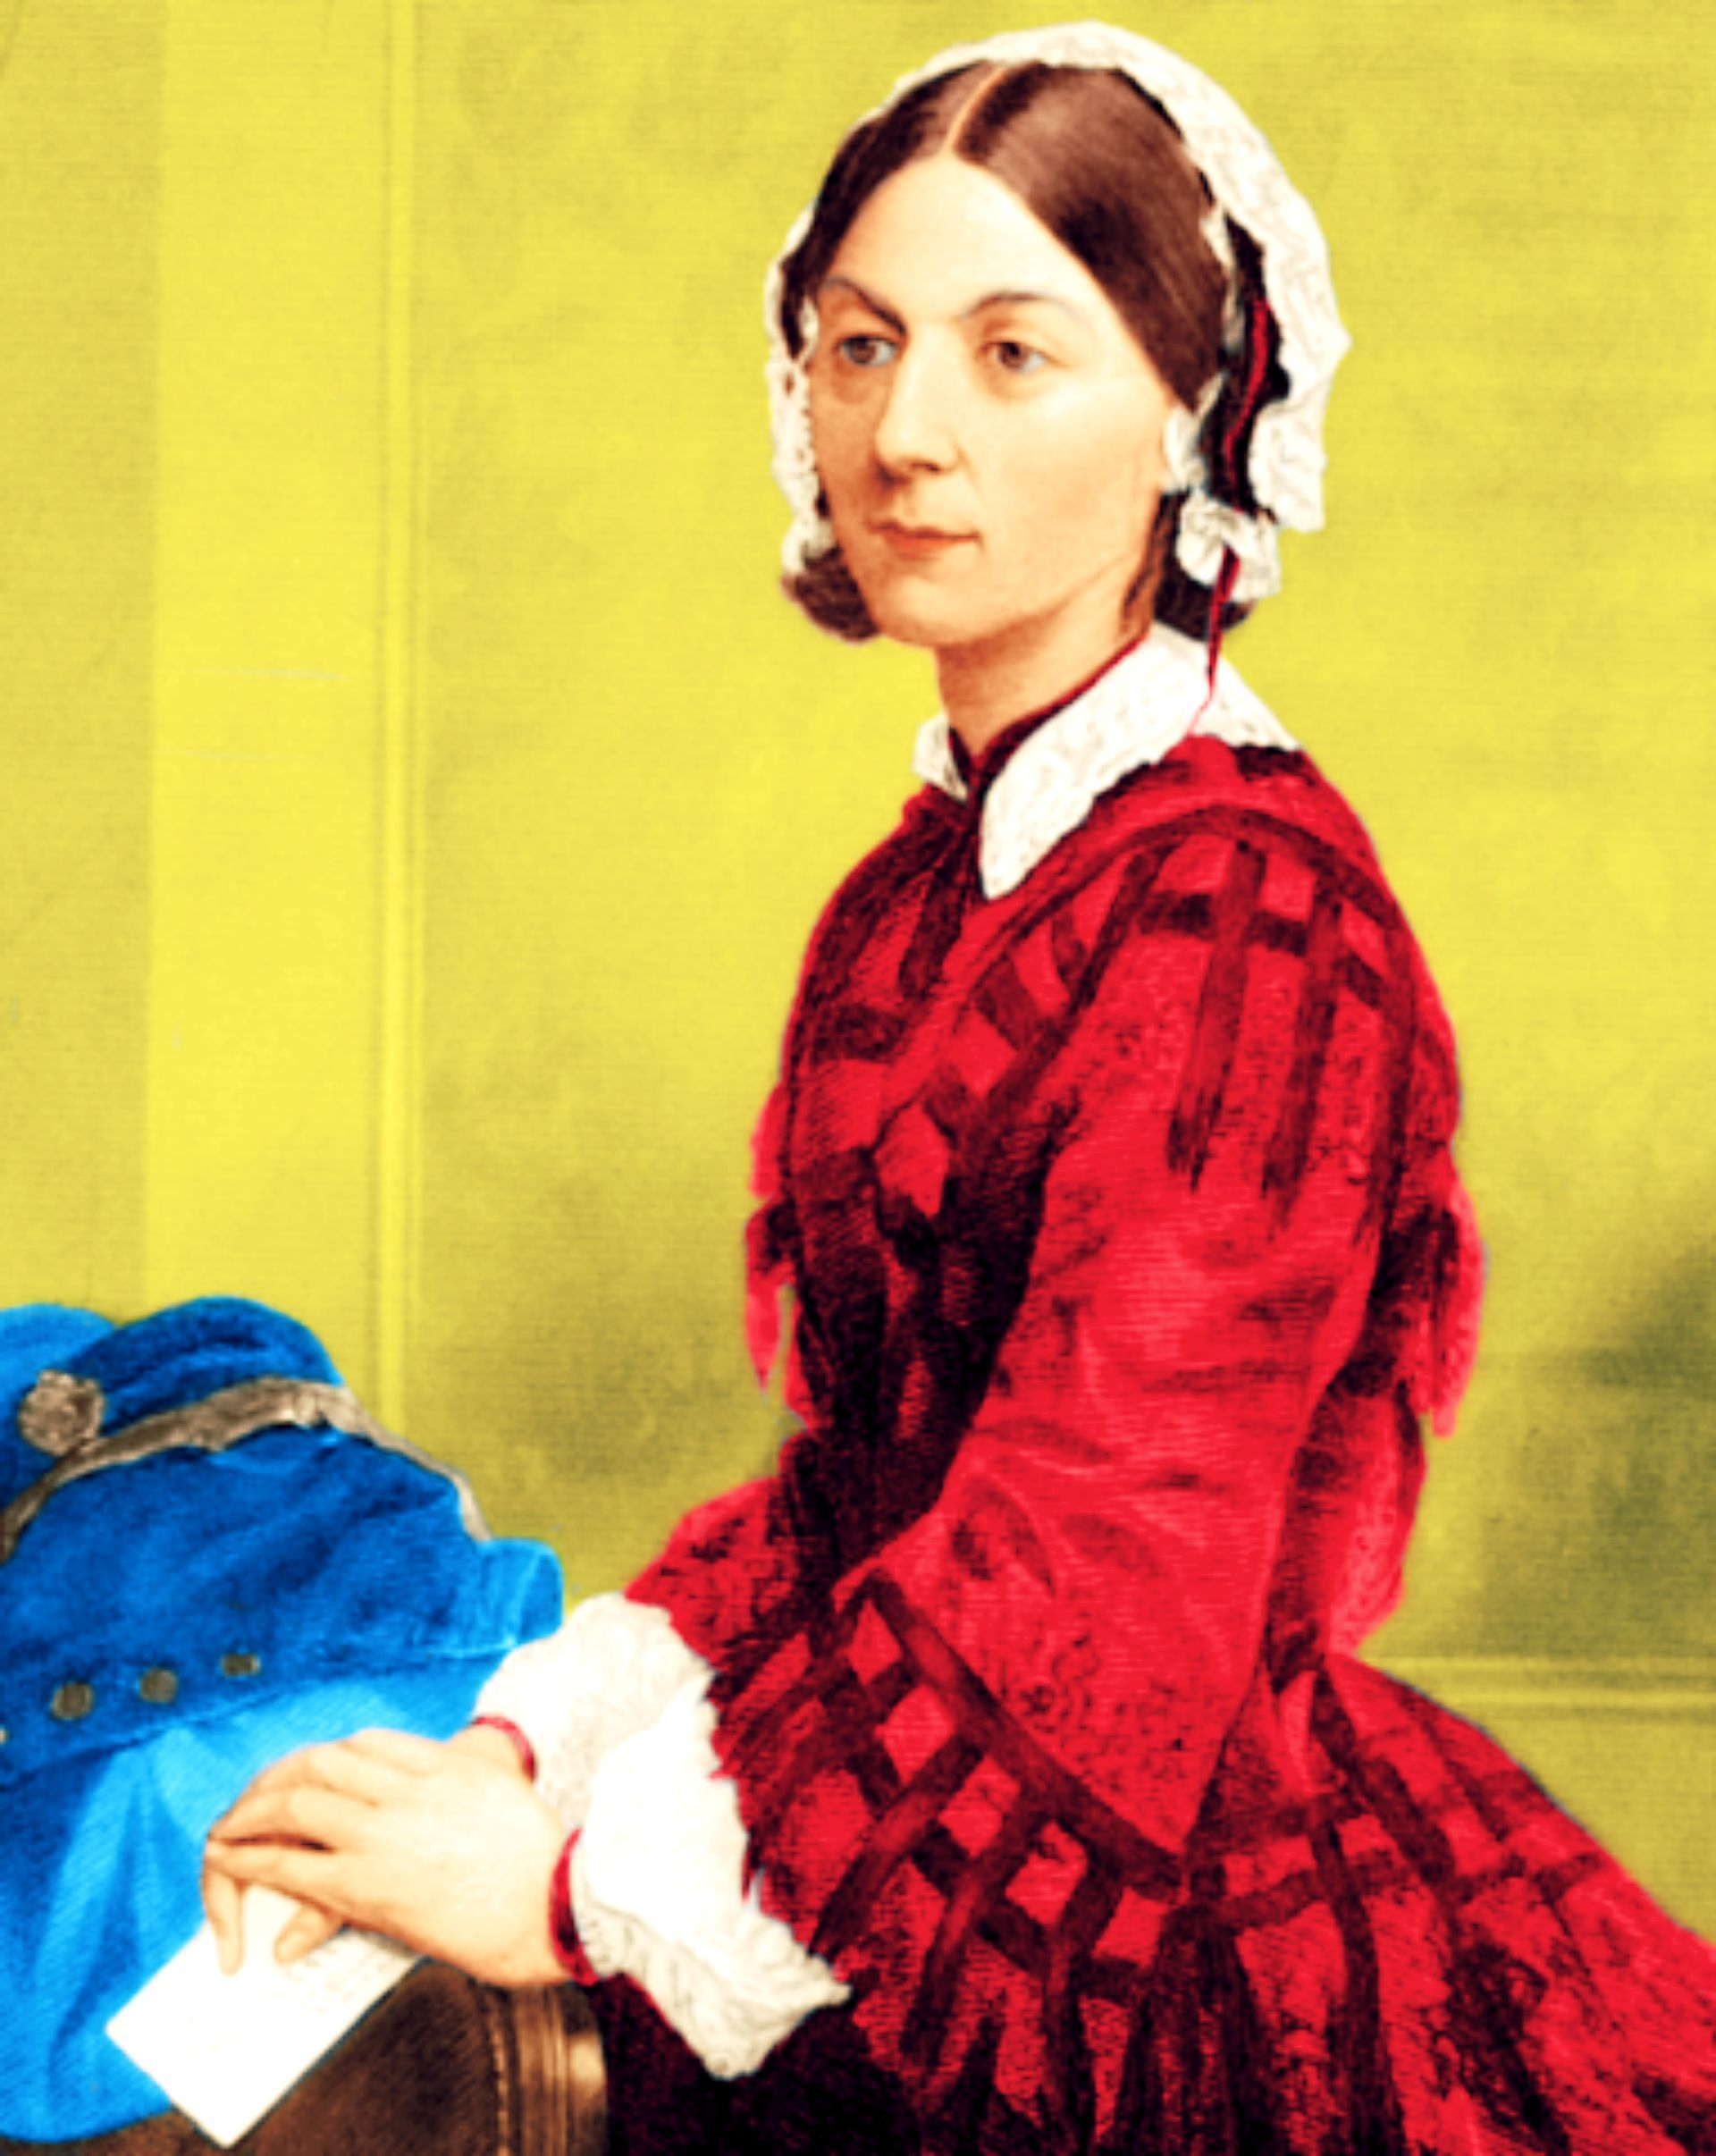 Florence Nightingale The Lady With The Lamp Founder Of